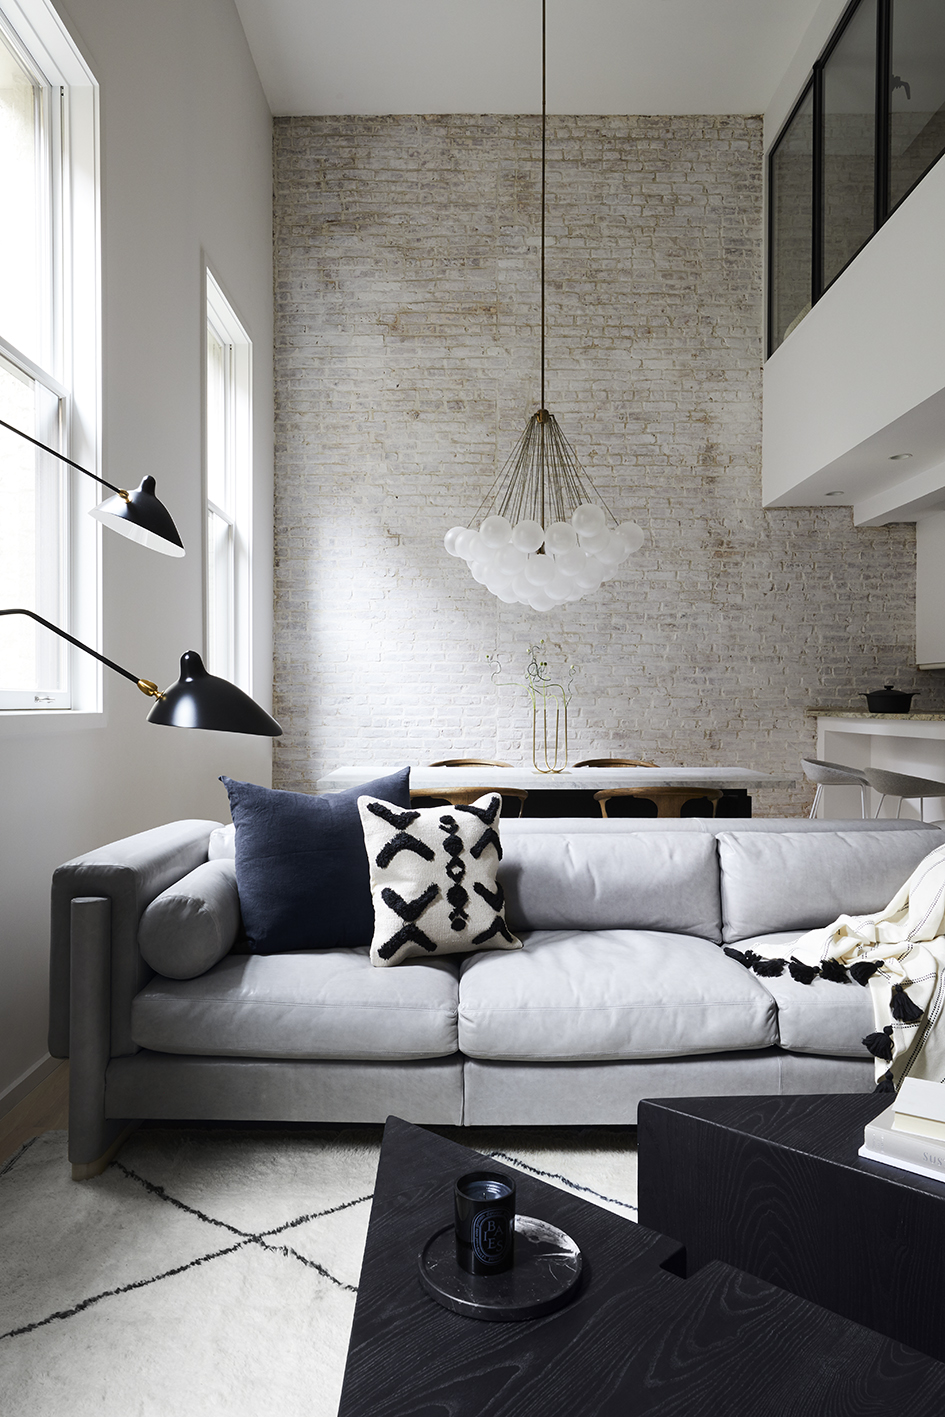 e. 18th_St_Living_Room_009.jpg